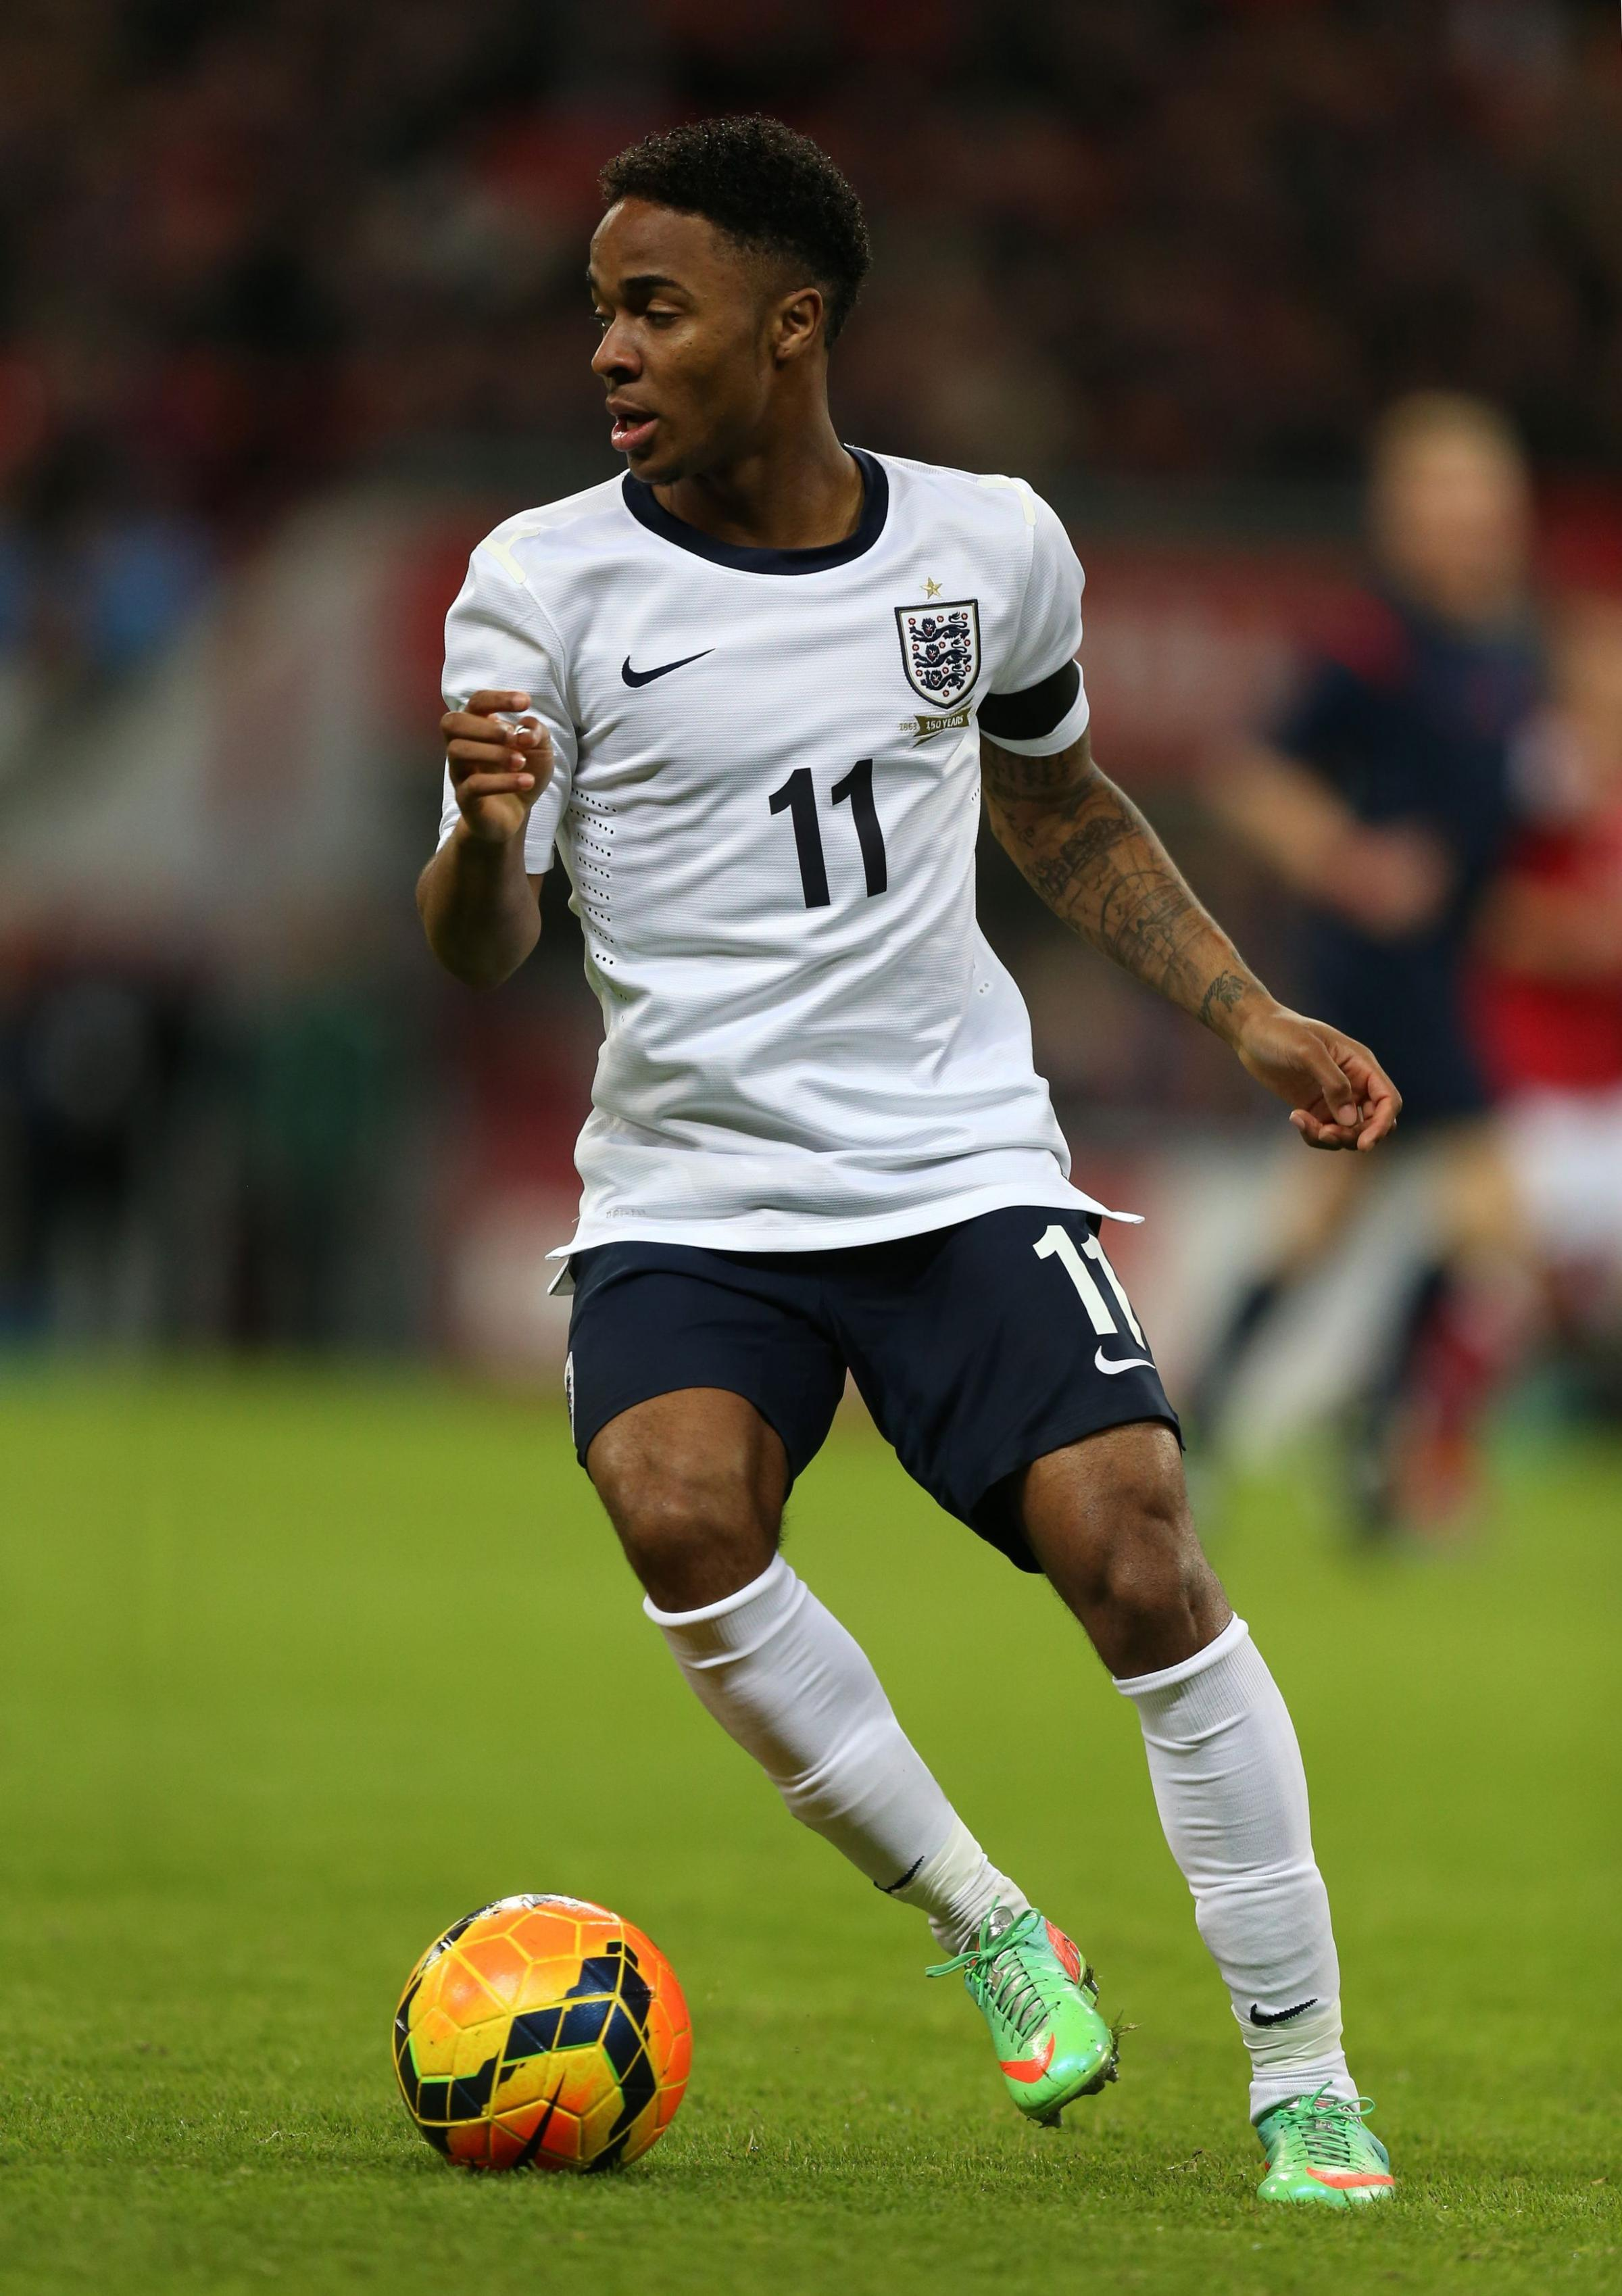 MAN OF THE MATCH: Raheem Sterling impressed for England on Wednesday